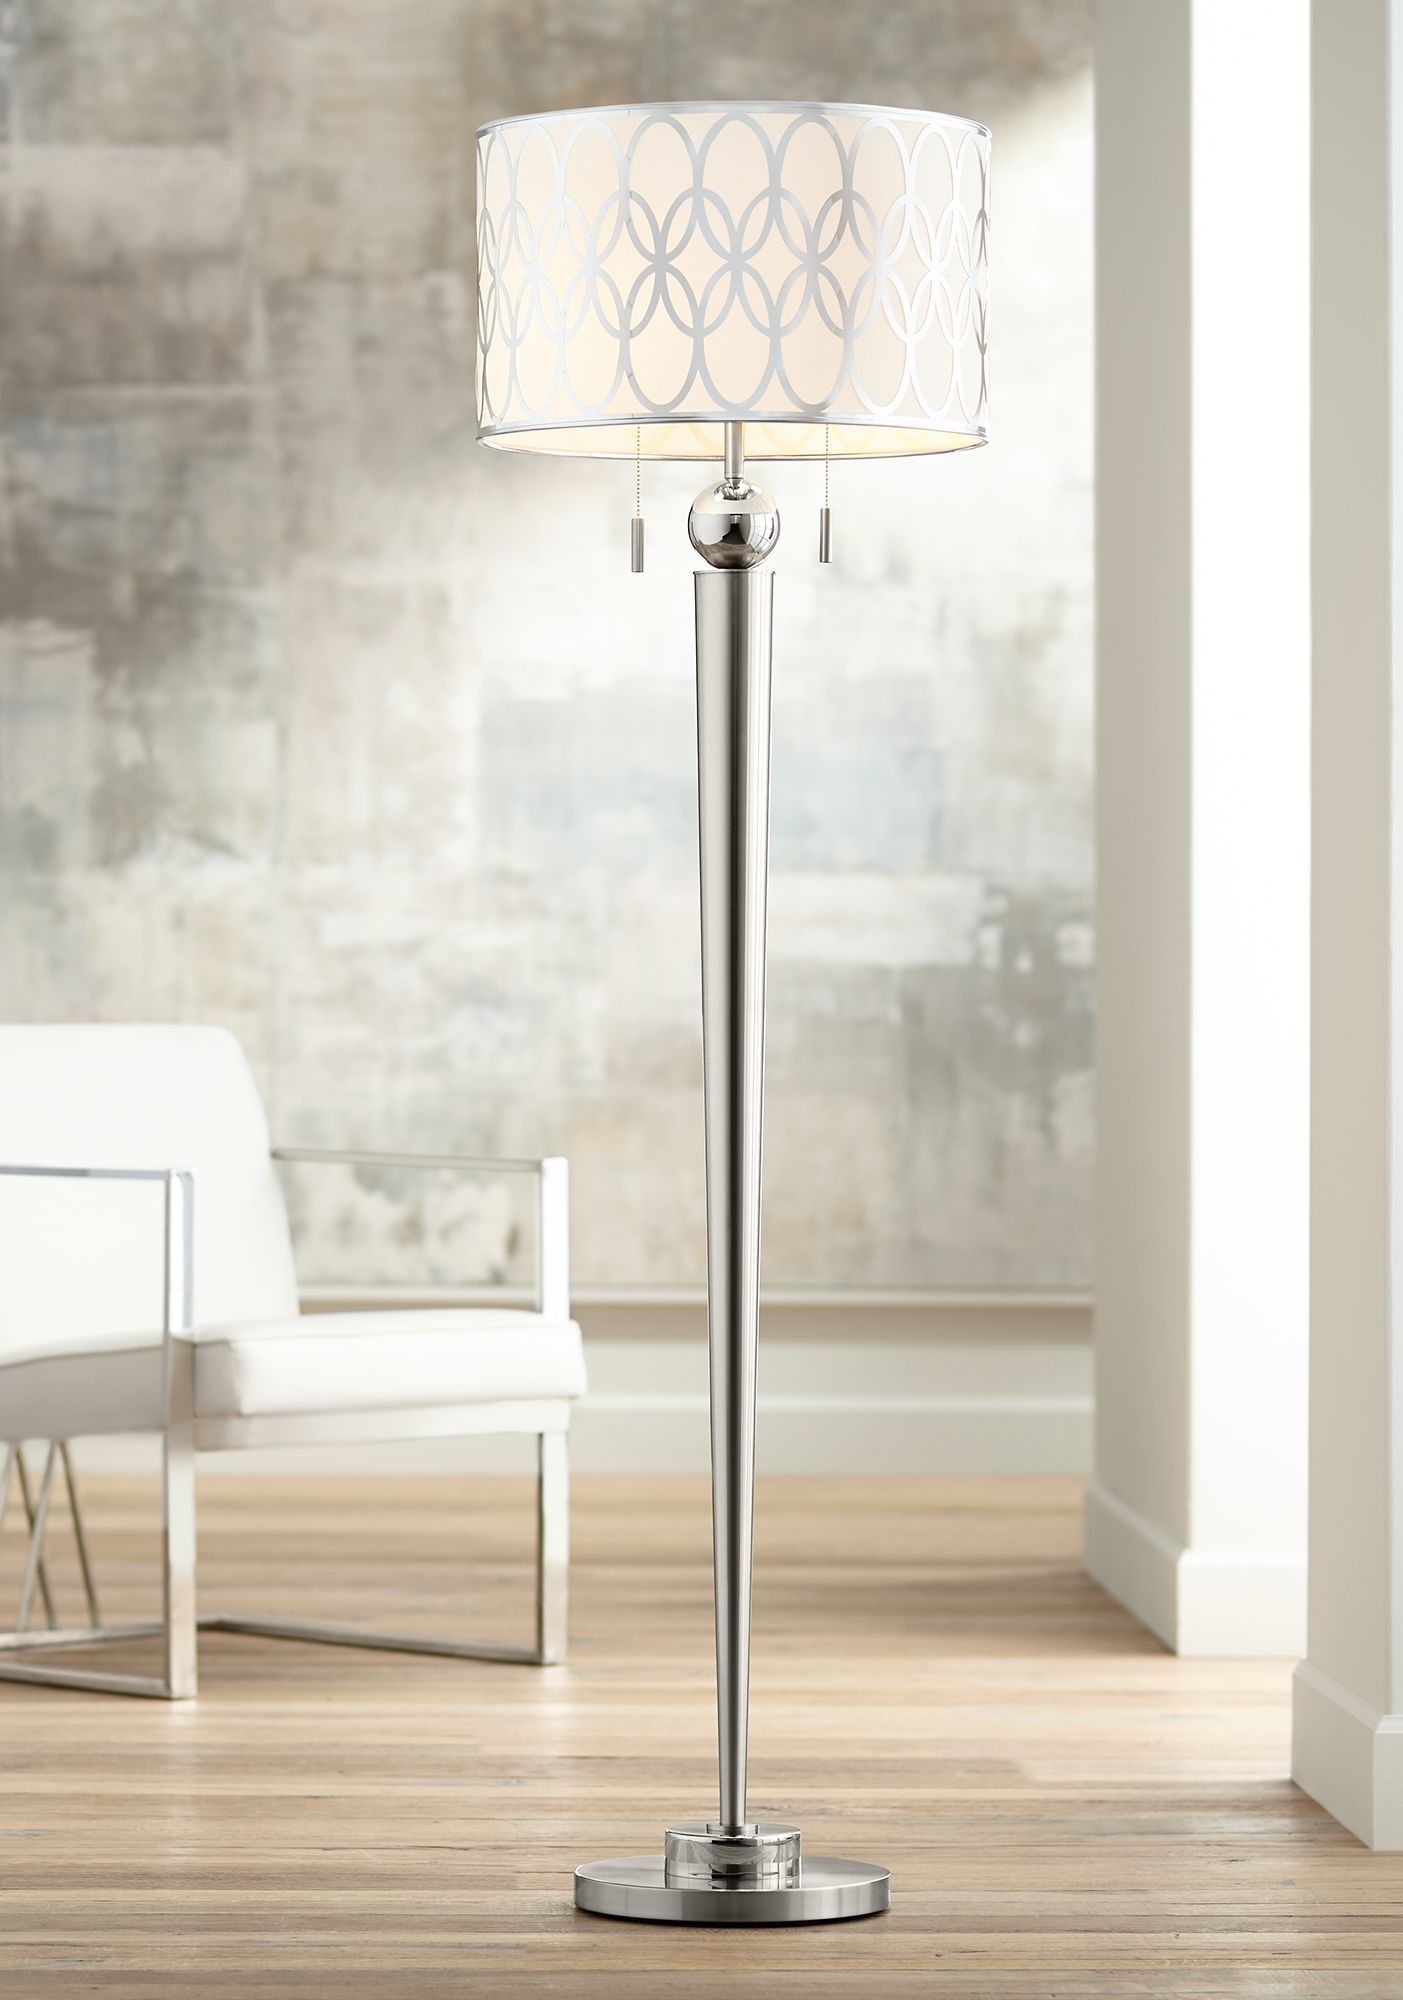 Possini Euro Spyra Brushed Steel Metal Floor Lamp